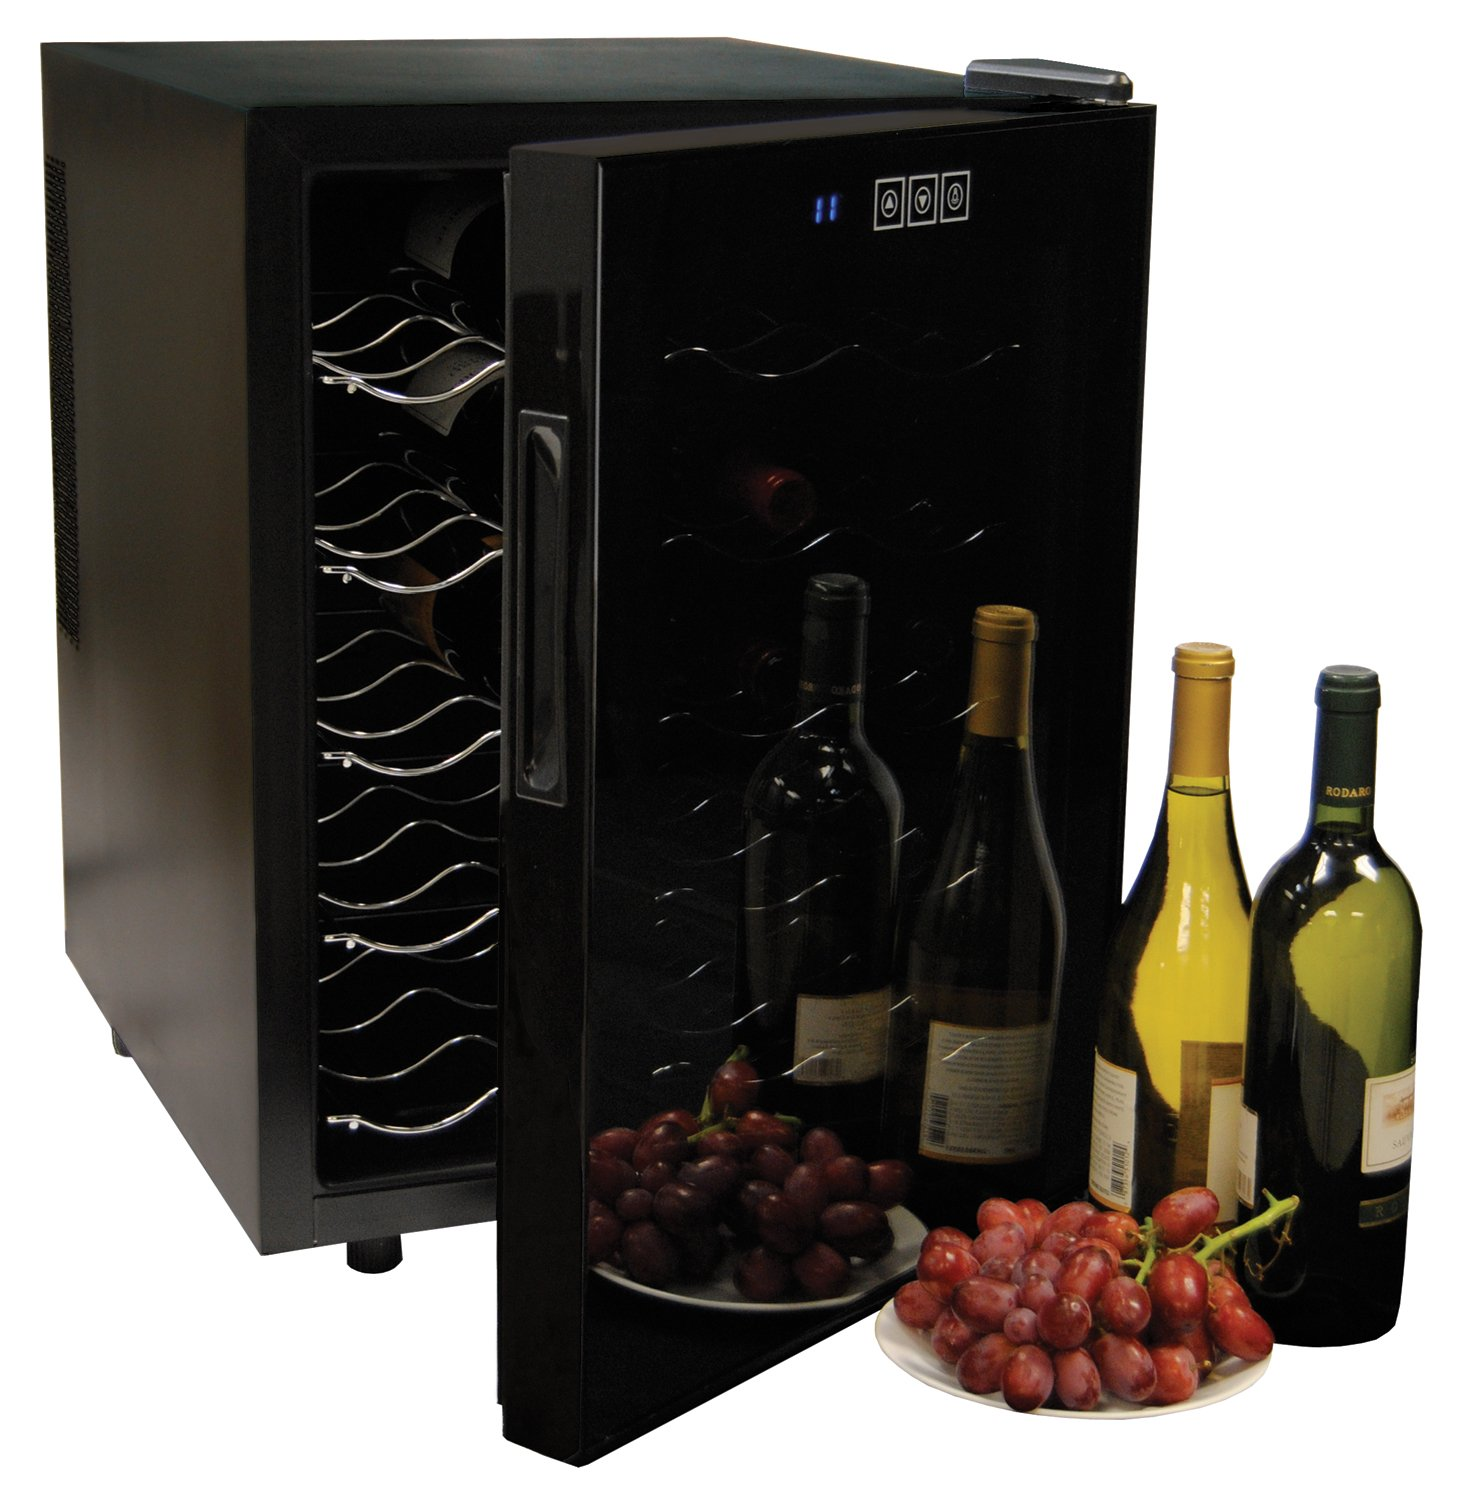 Koolatron WC20 Mirrored Glass Door Wine Cellar (20 Bottle), Black Koolatron (Kitchen)